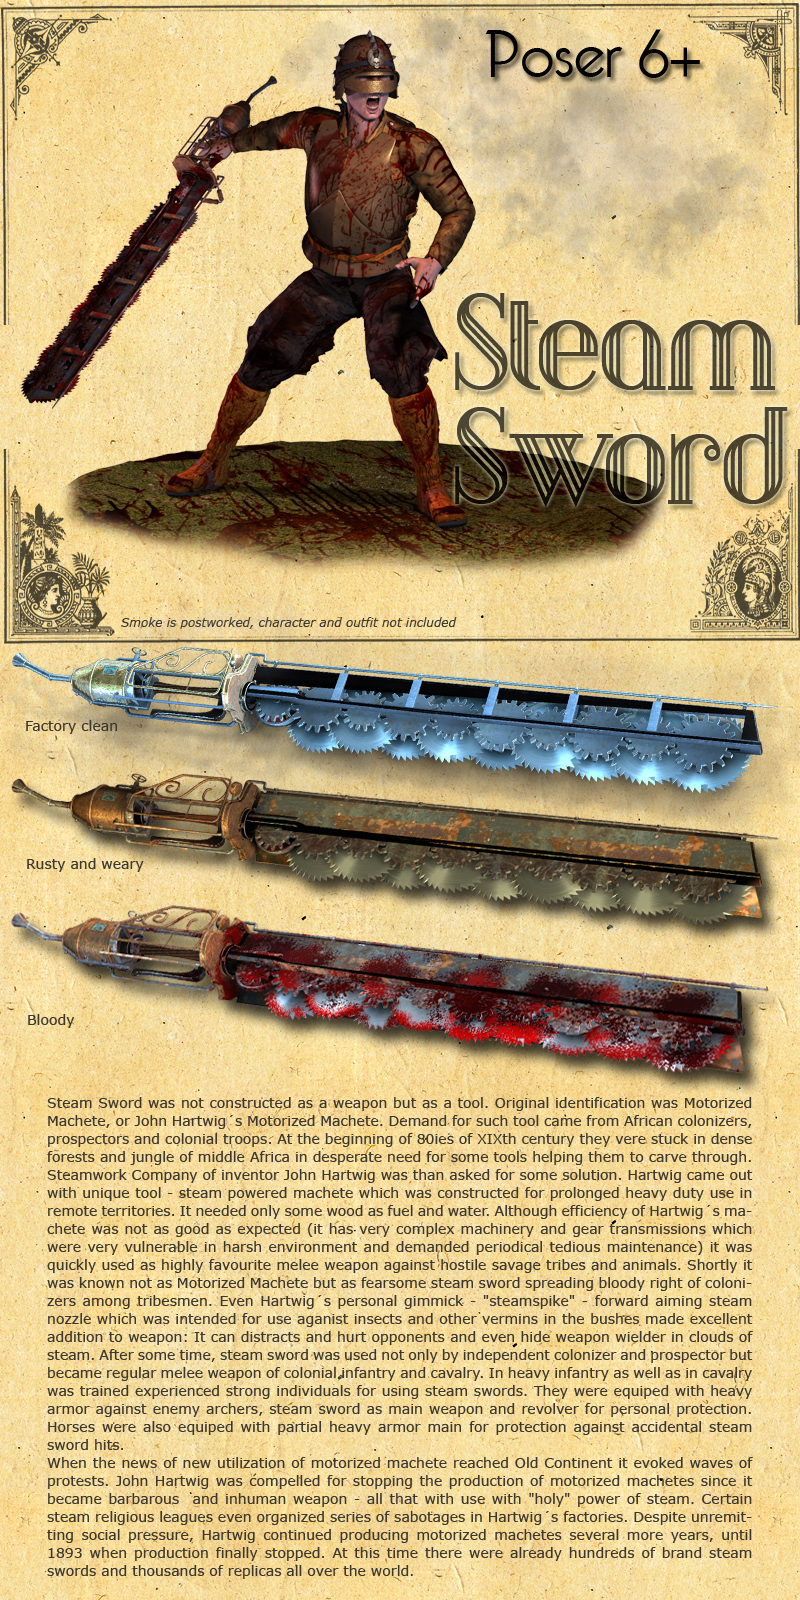 Steam Sword